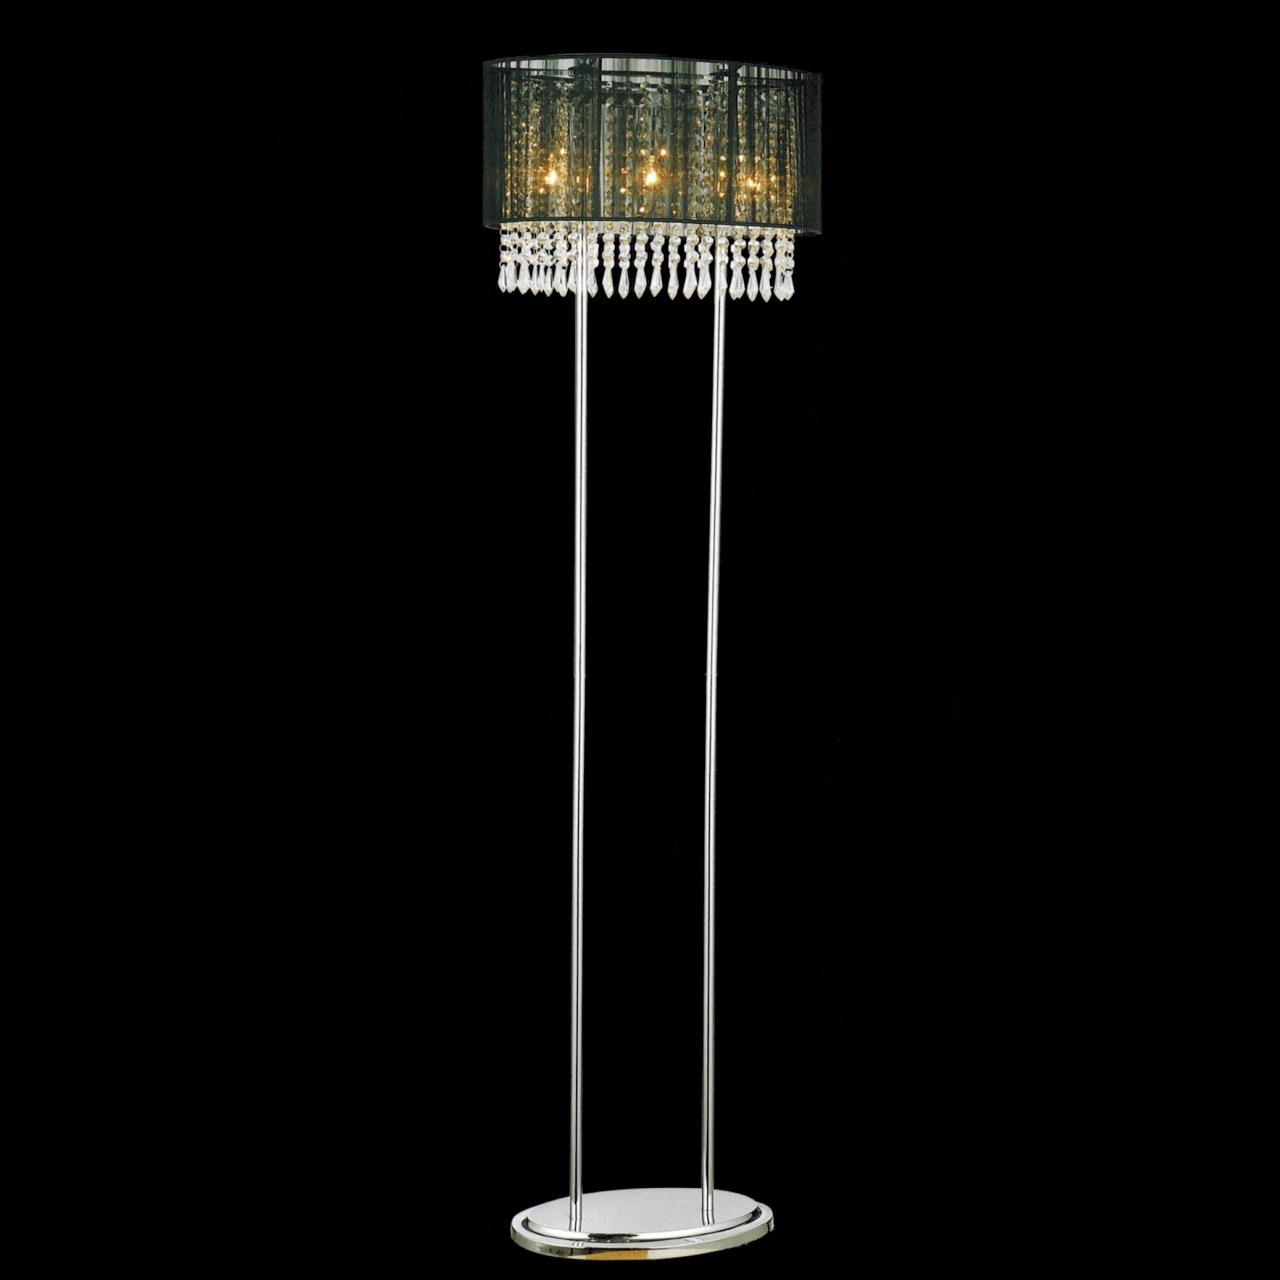 Brizzo lighting stores 59 ovale contemporary string drum shade picture of 59 ovale contemporary string drum shade crystal floor lamp polished chrome black aloadofball Choice Image